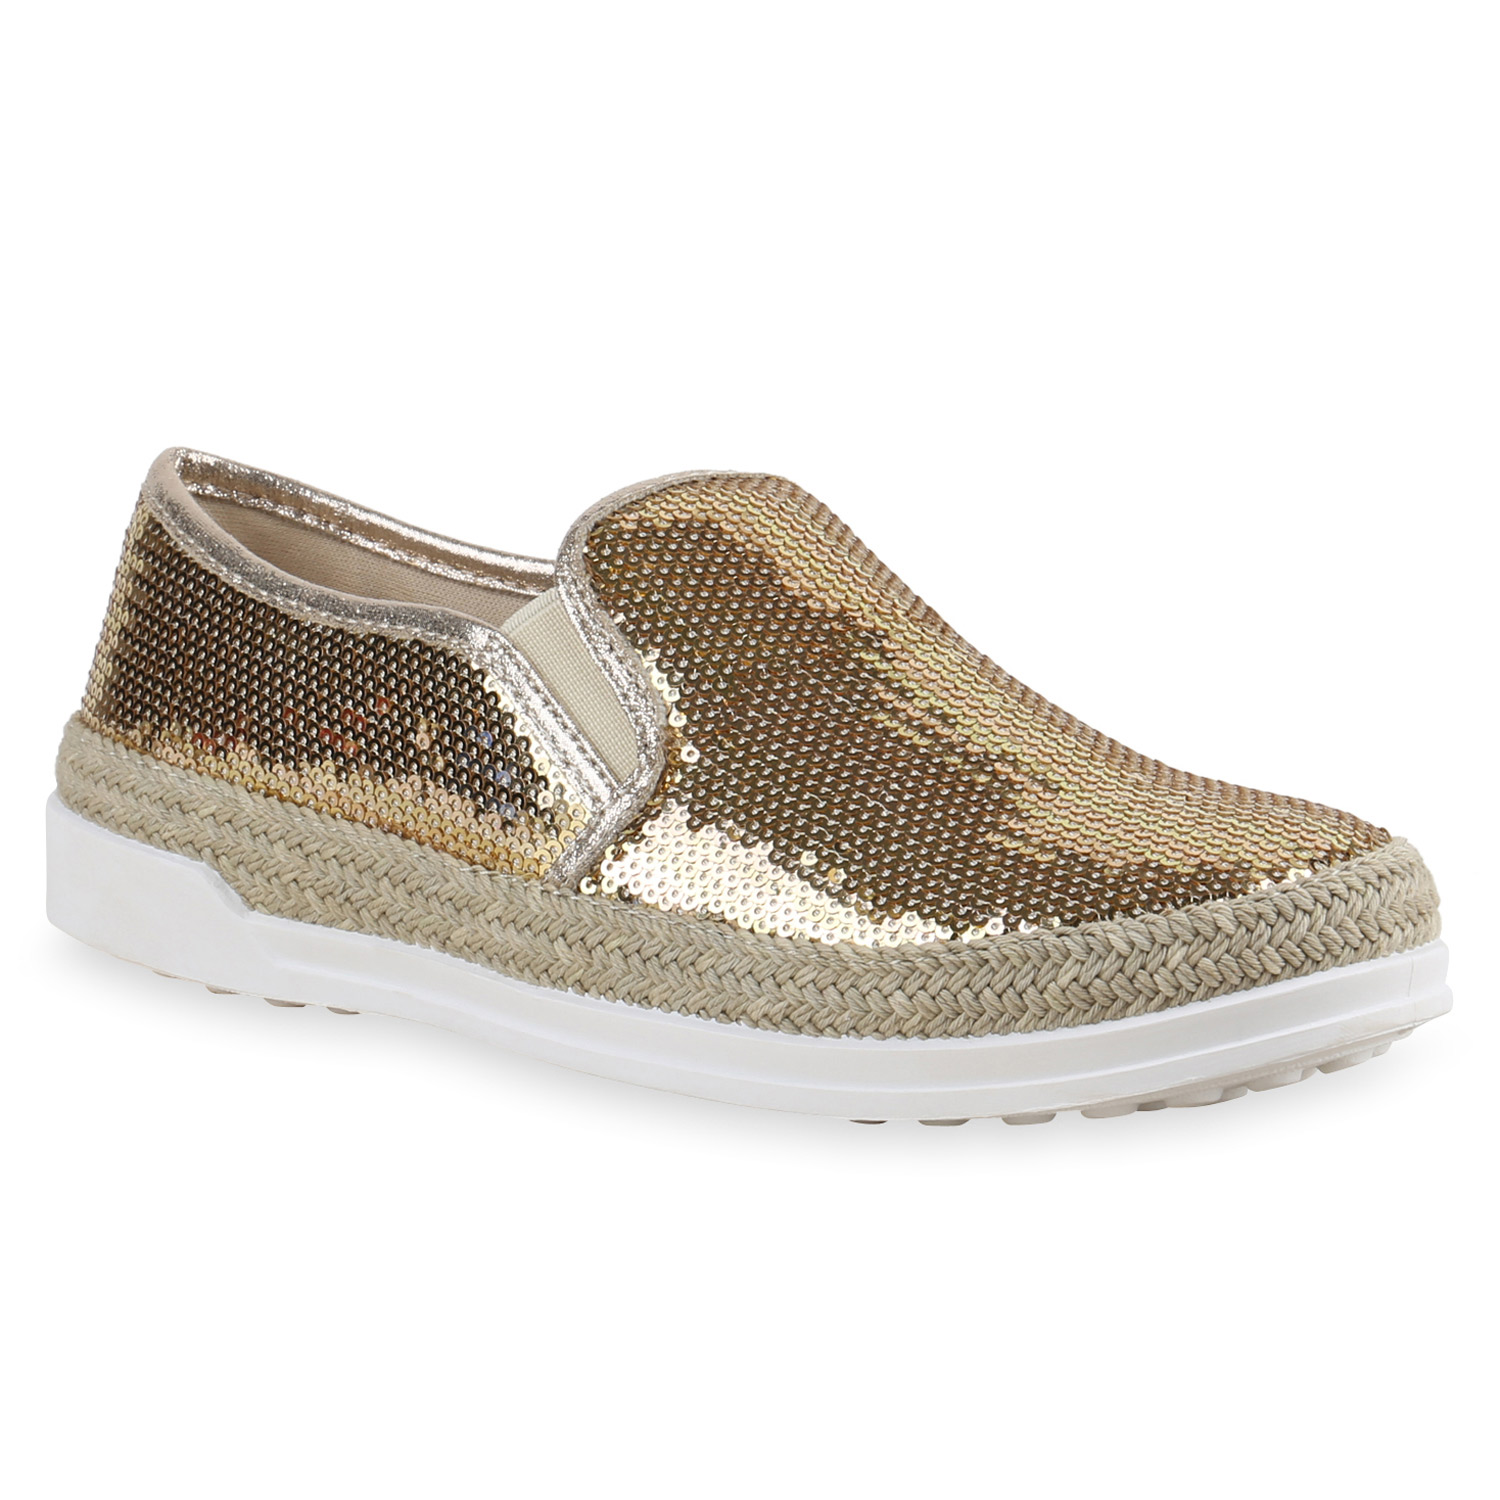 FASHION DAMEN SCHUHE 137302 SNEAKERS GOLD 39 NEUWARE